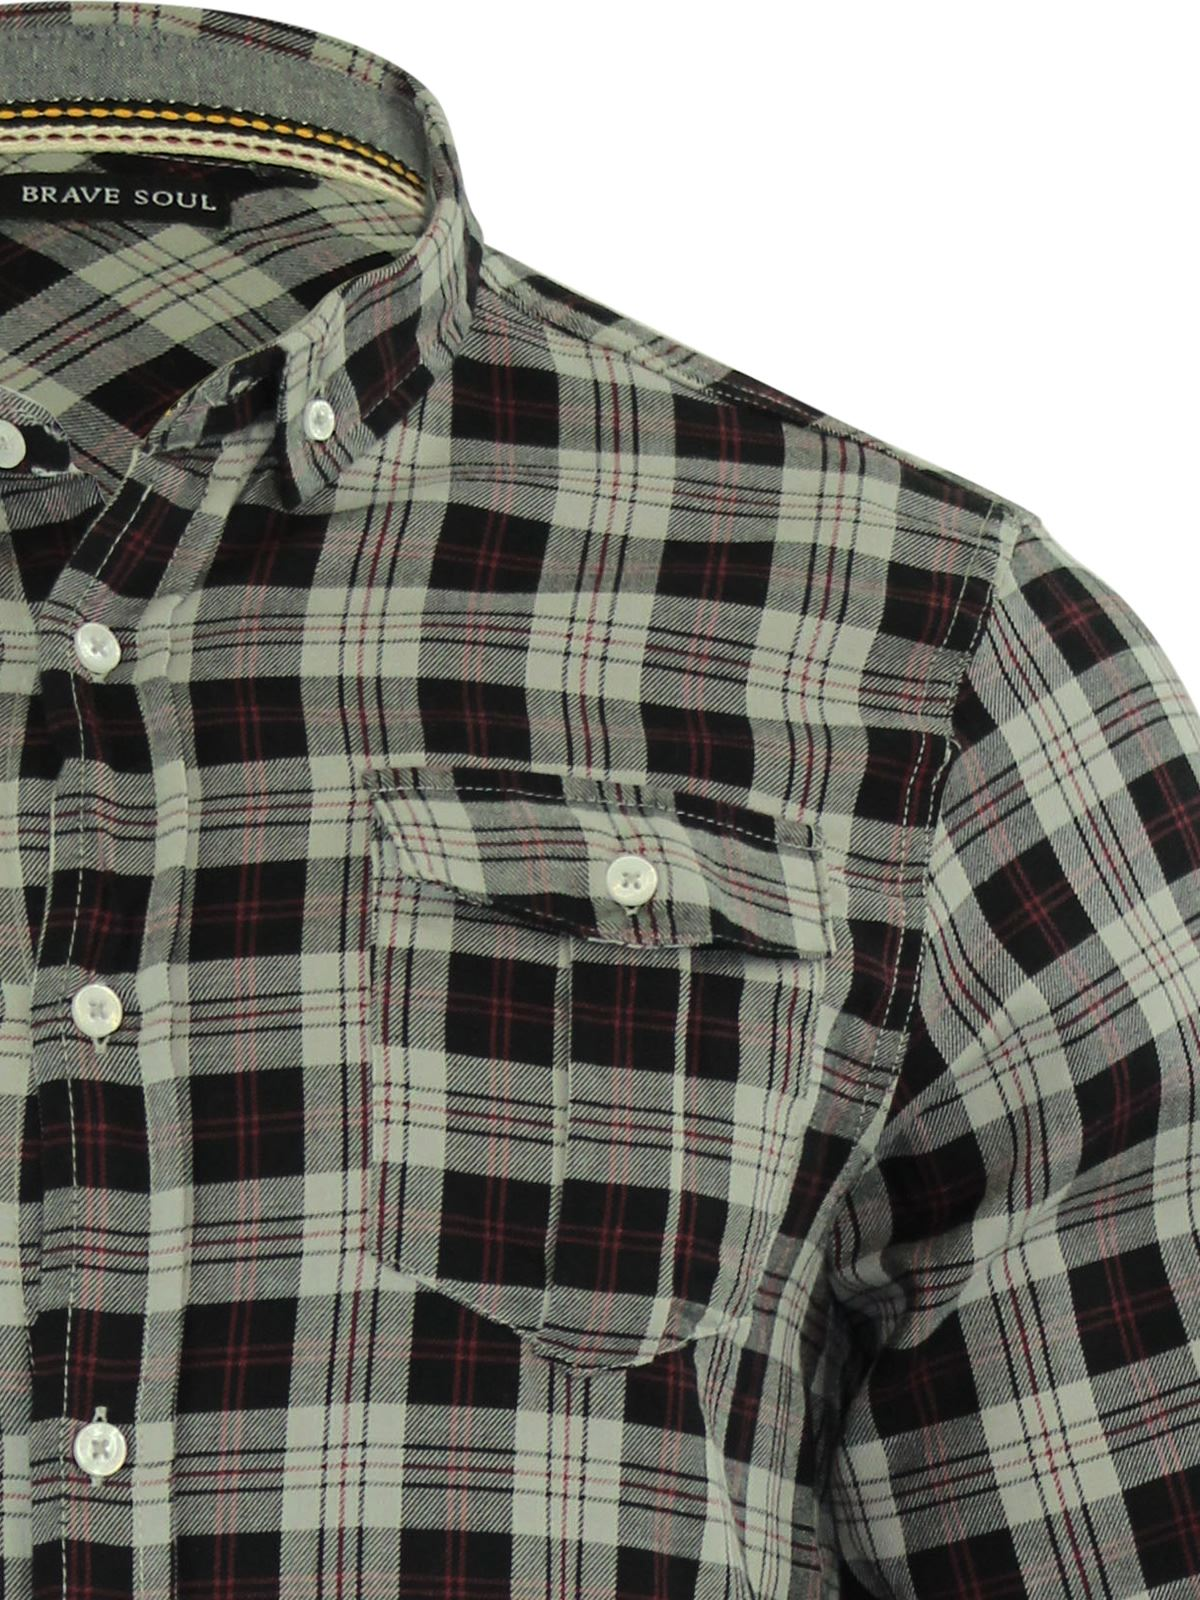 Mens-Check-Shirt-Brave-Soul-Flannel-Brushed-Cotton-Long-Sleeve-Casual-Top thumbnail 58